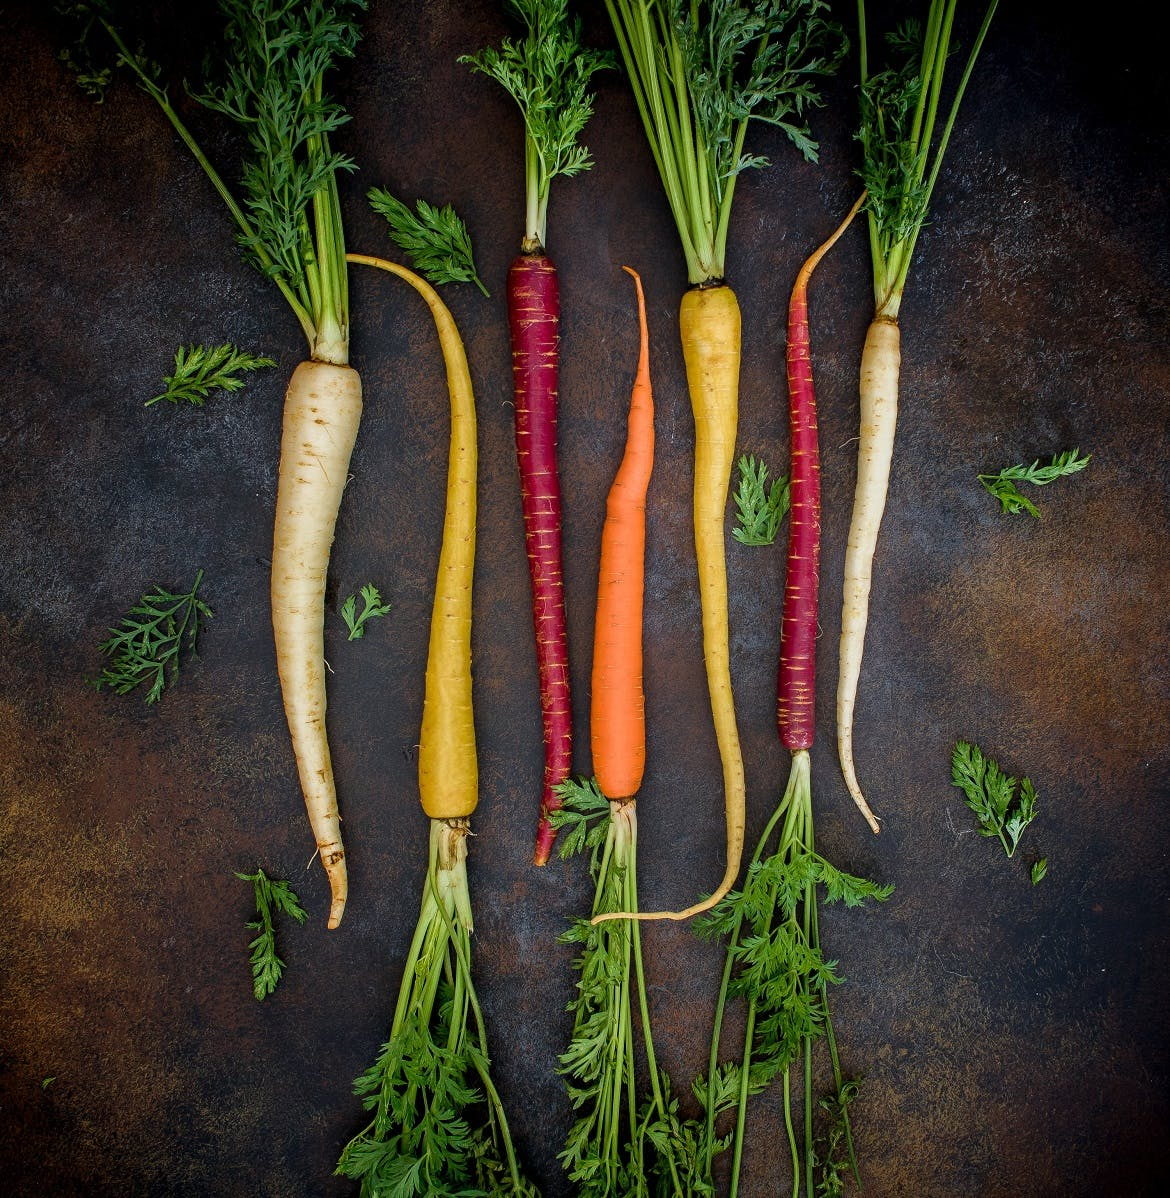 Various root vegetables laid out lined up next to each other.